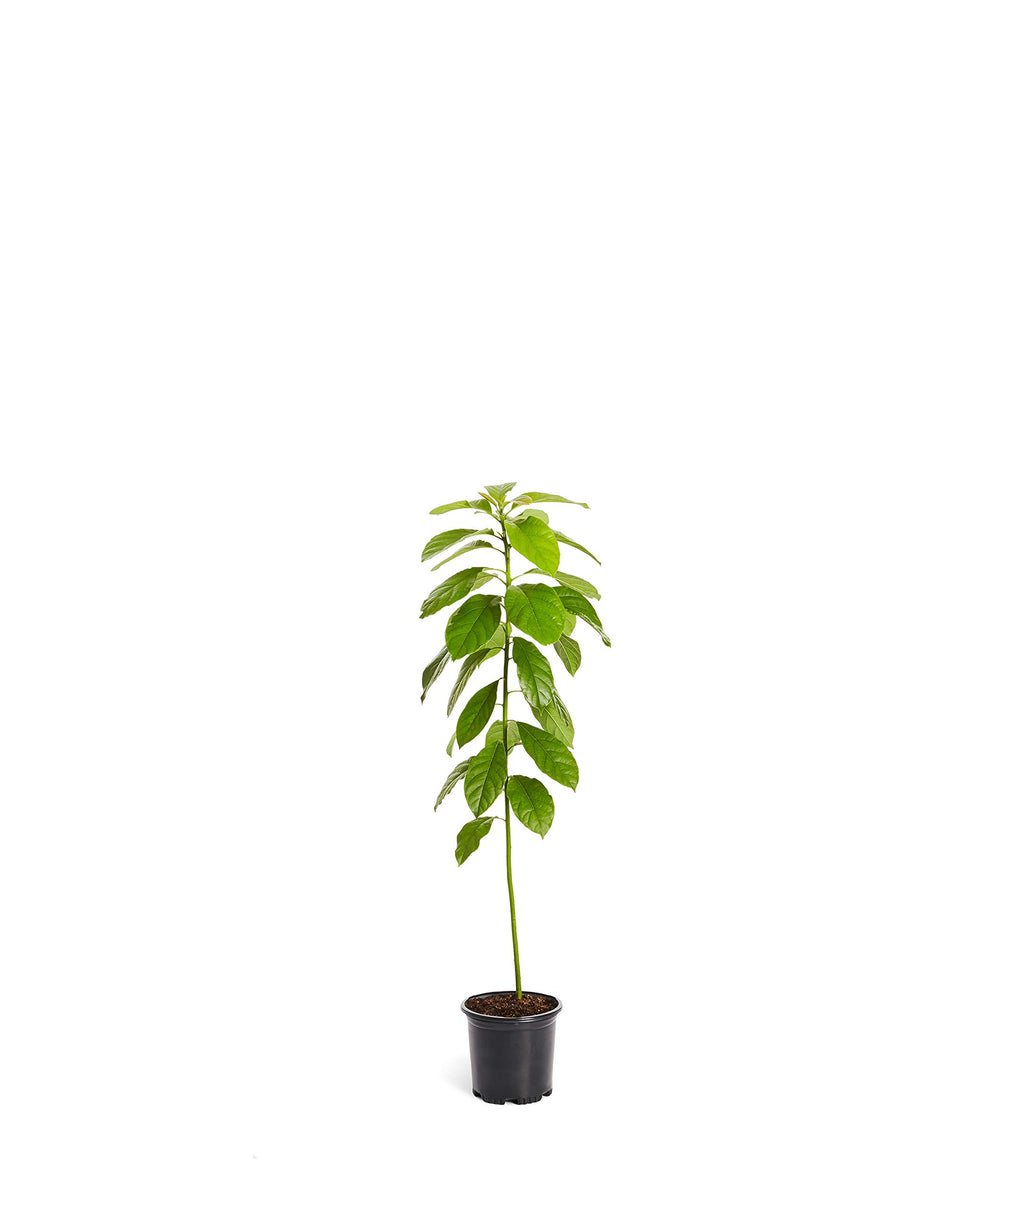 Brighter Blooms Hass Avocado Tree: Indoor/Outdoor 1-2 ft